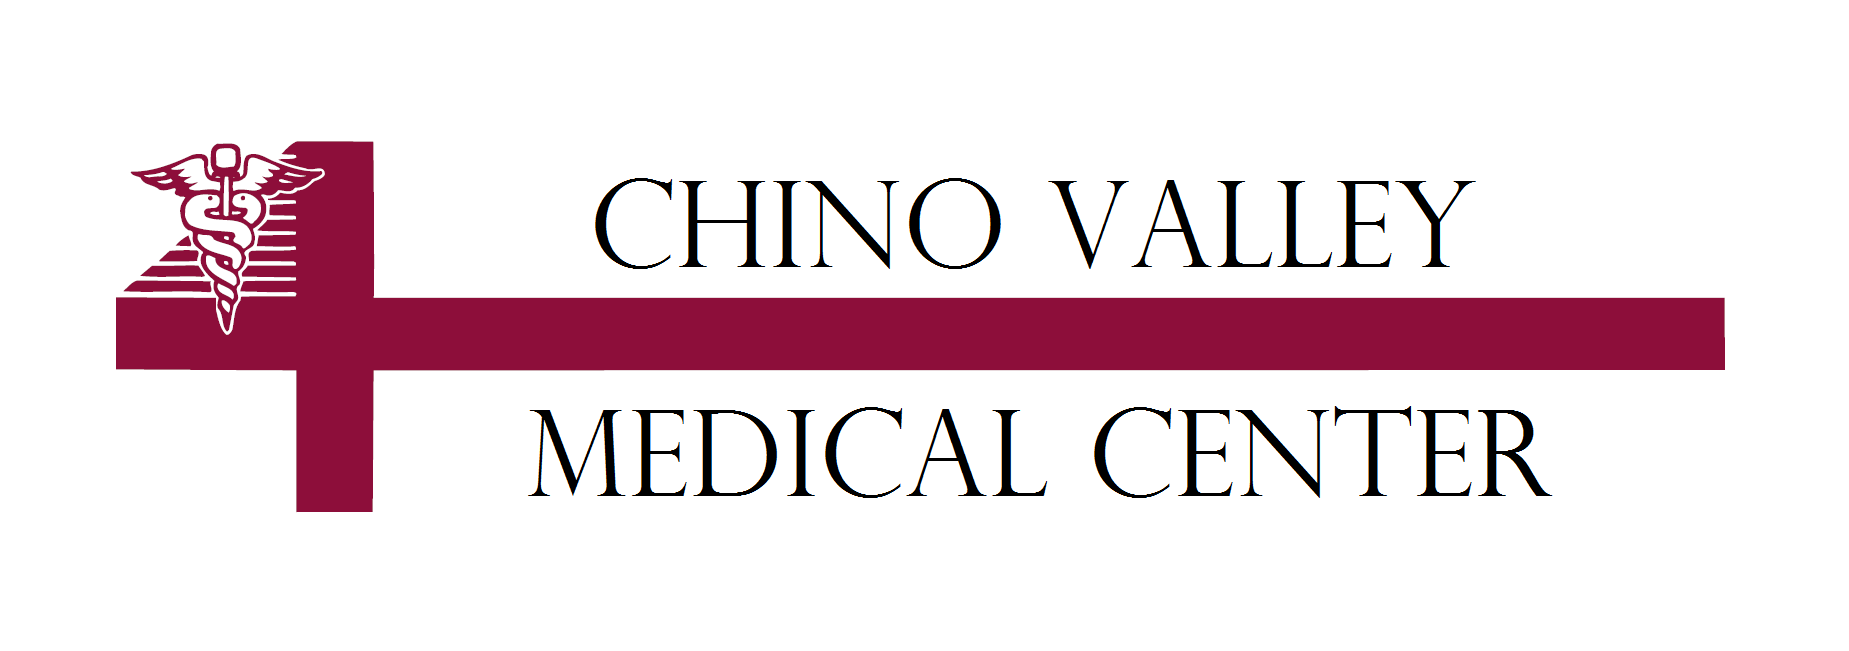 02 chino valley medical center